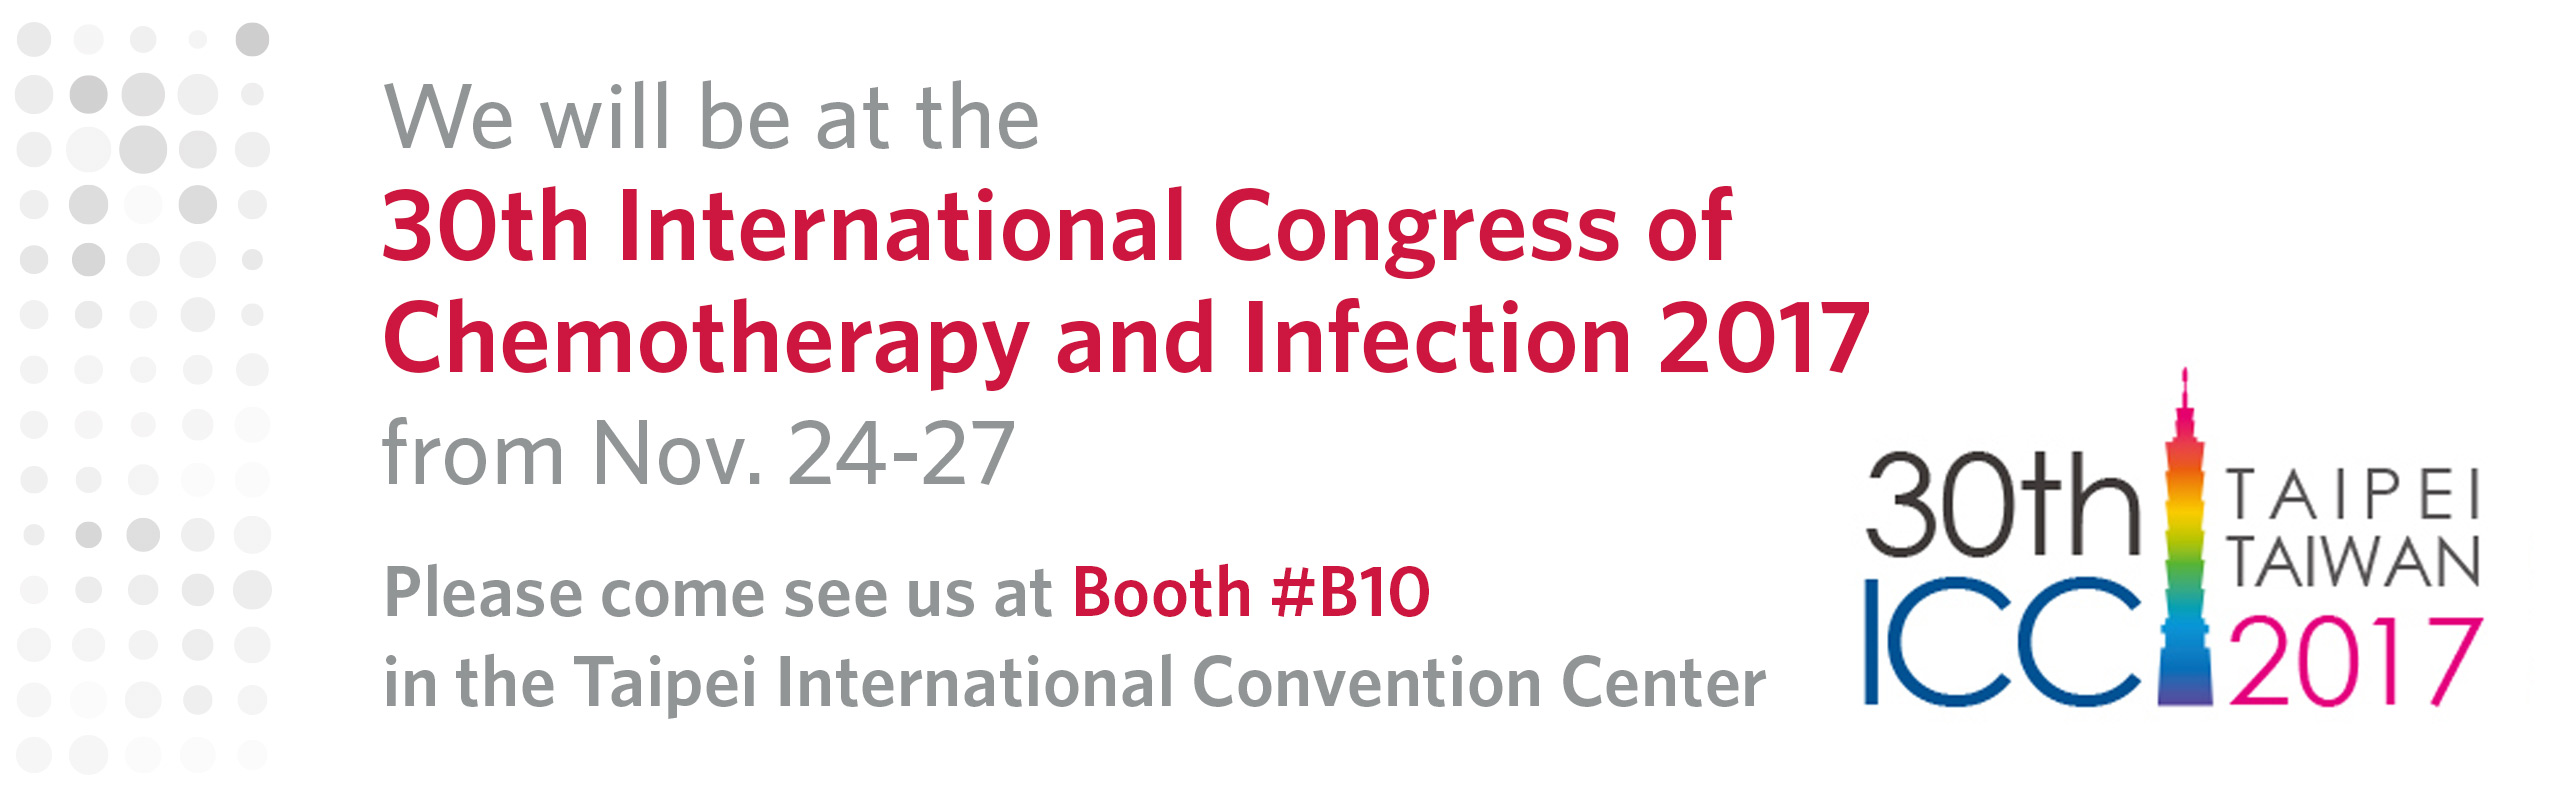 We will be at the 30th International Congress of Chemotherapy and Infection 2017 from Nov. 24-27. Come see us at Booth #B10!